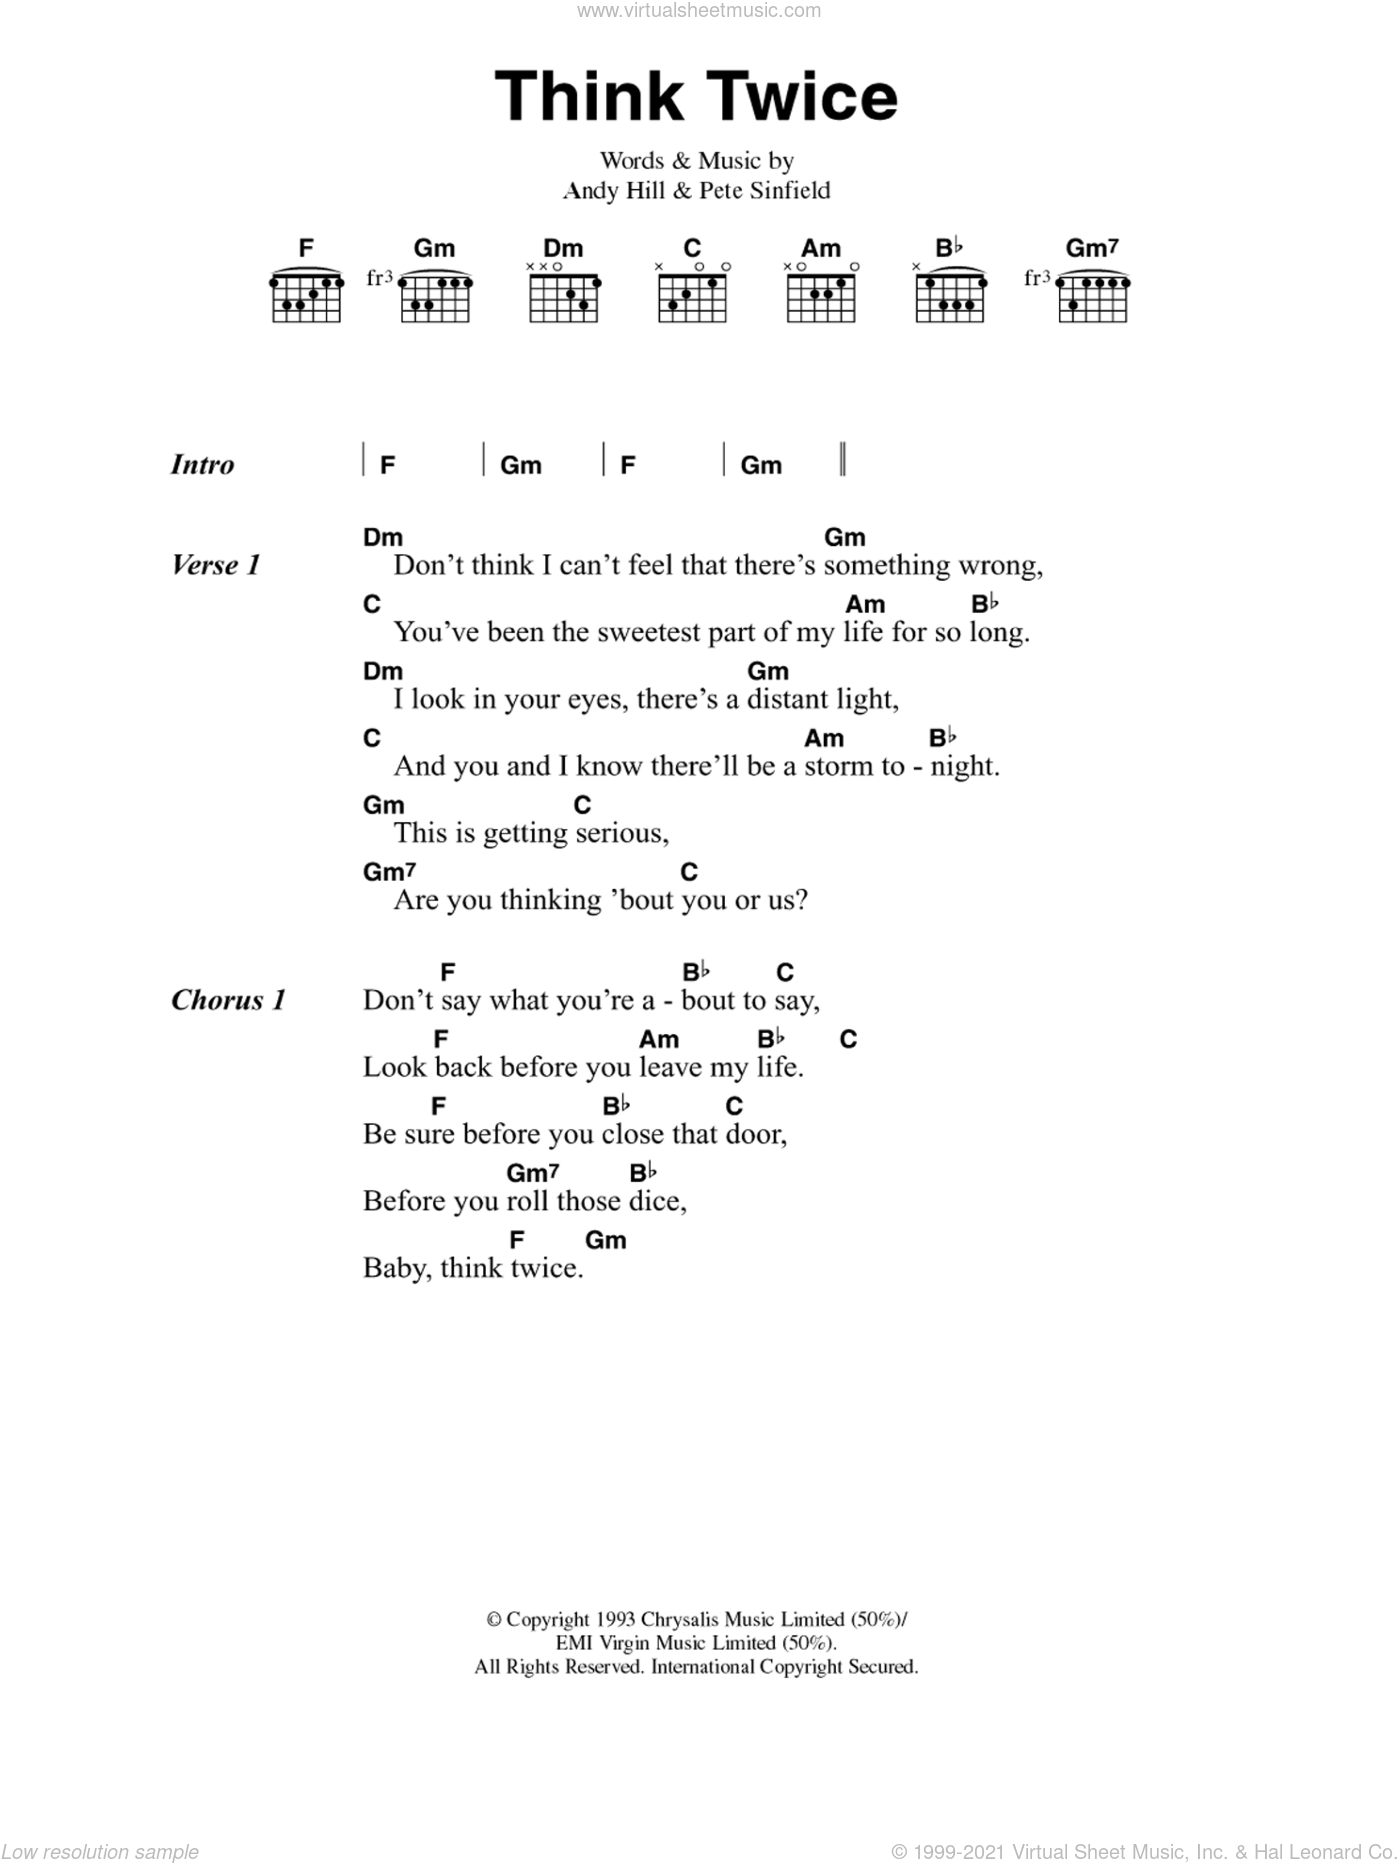 Think Twice sheet music for guitar (chords) by Pete Sinfield